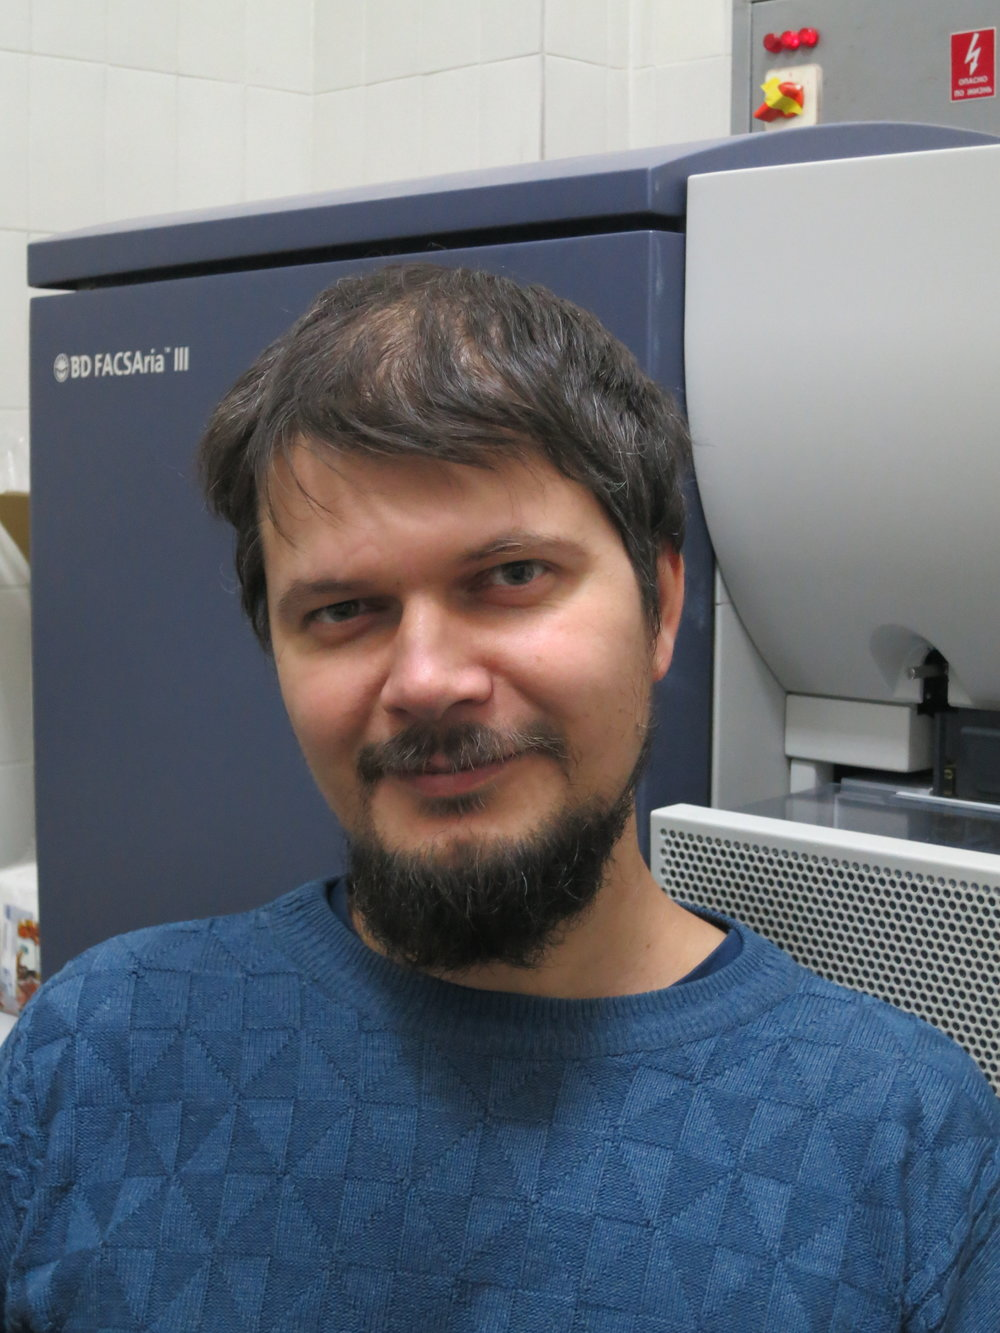 - ALEXANDER S. SHCHEGLOVSenior Research FellowPhD in Molecular Biology (2006)Ms diploma with honors (1999)from Lomonosov Moscow State University Biology DepartmentExpertise in protein chemistry, biochemistryjukart.at.mail.ru